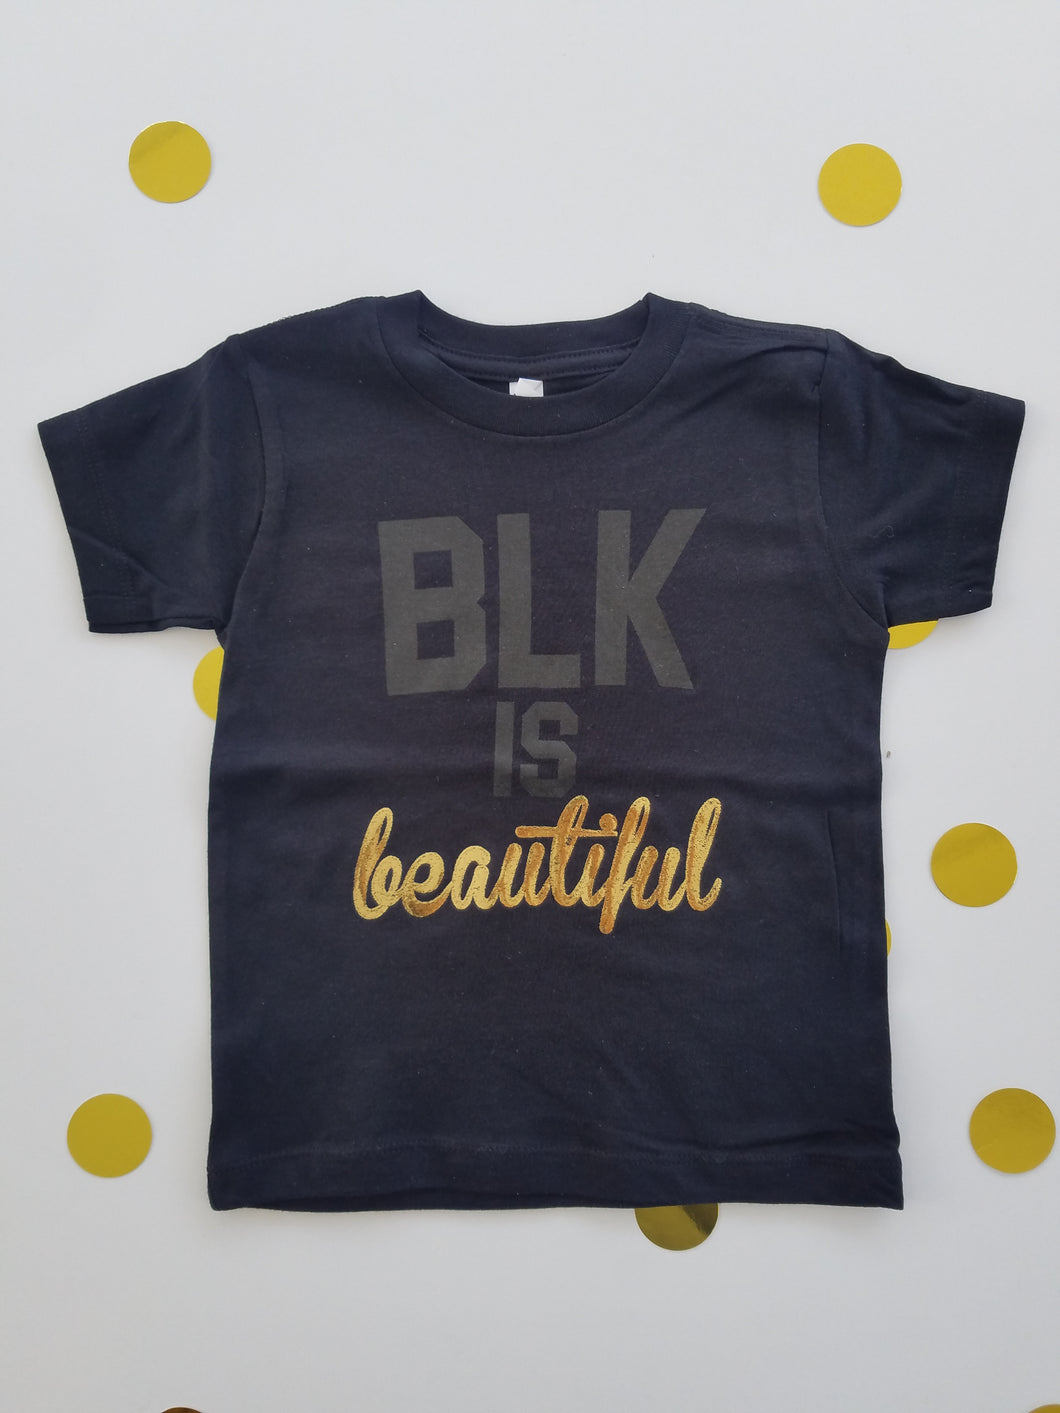 BLK is Beautiful- Toddler